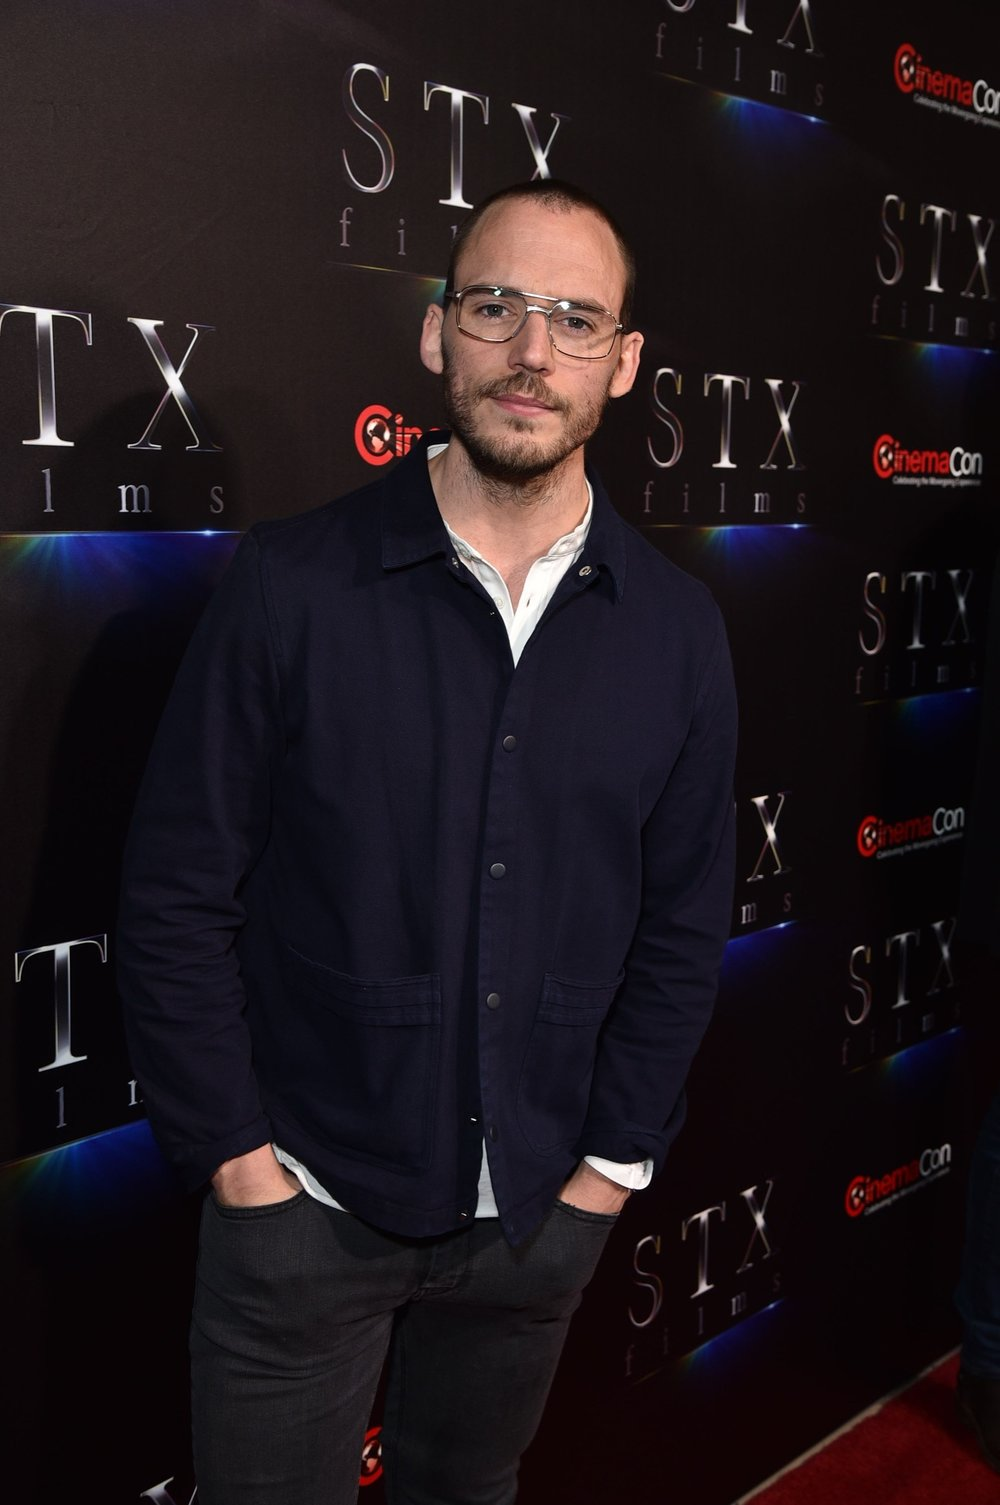 Sam Claflin attends STXfilms' 2018 CinemaCon Presentation at The Colosseum of Caesars Palace, Las Vegas, NV Tuesday, April 24, 2018.